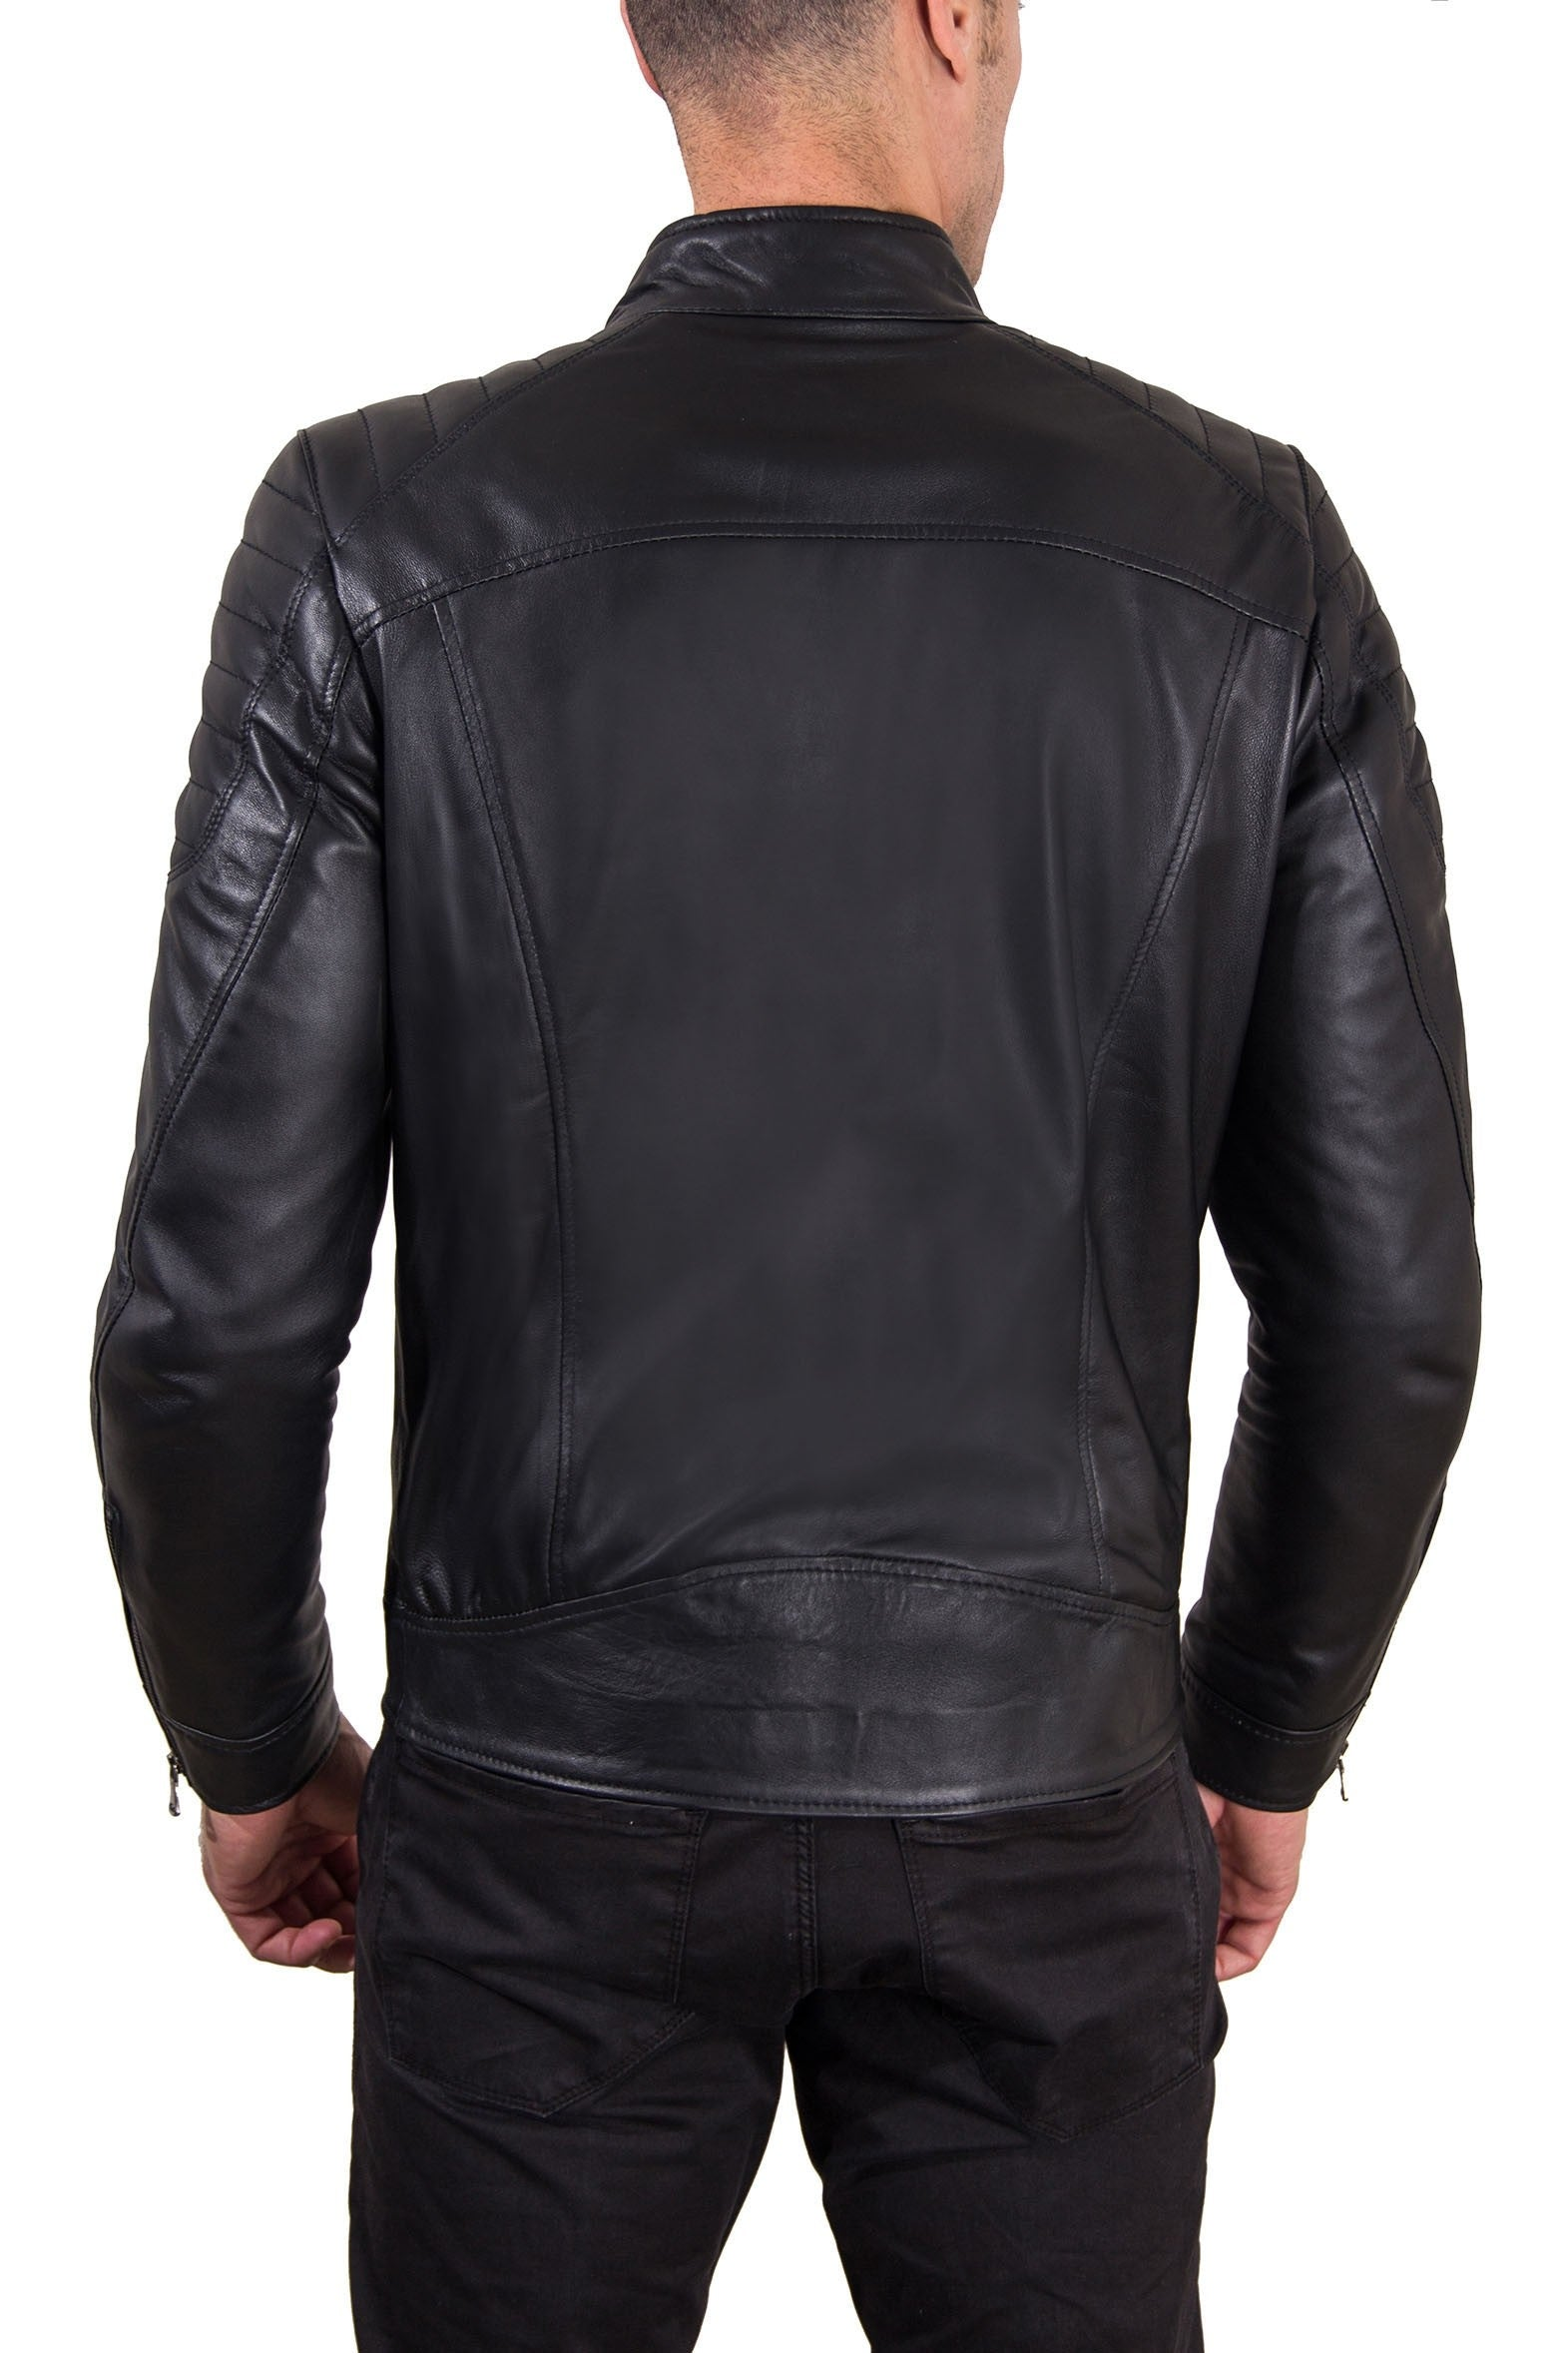 Men's Leather Jacket  Genuine Soft Leather Biker Mao Collar Quilted Yoke Black Color U411